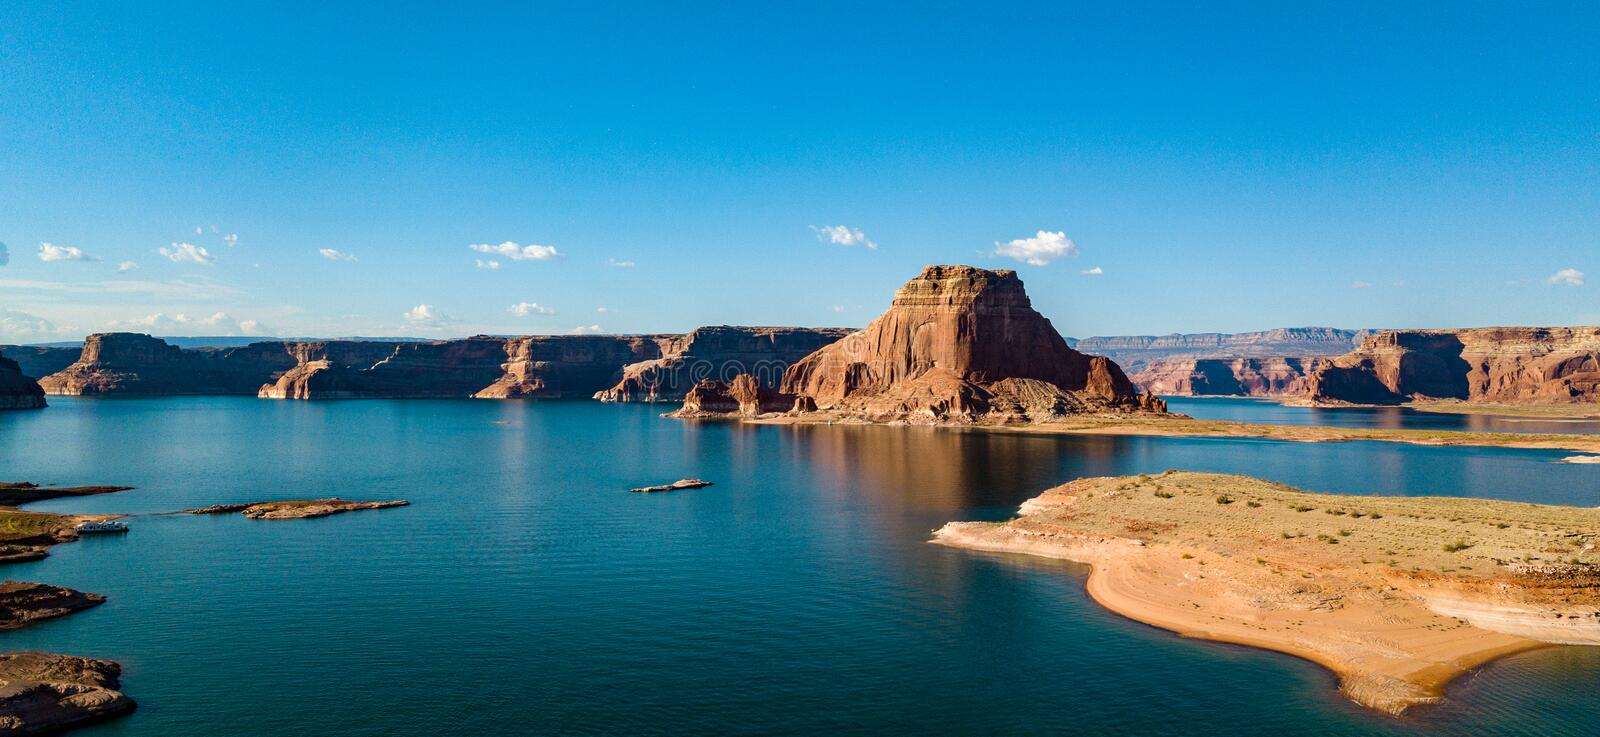 Aerial View Of Lake Powell Near The San Juan River stock photo